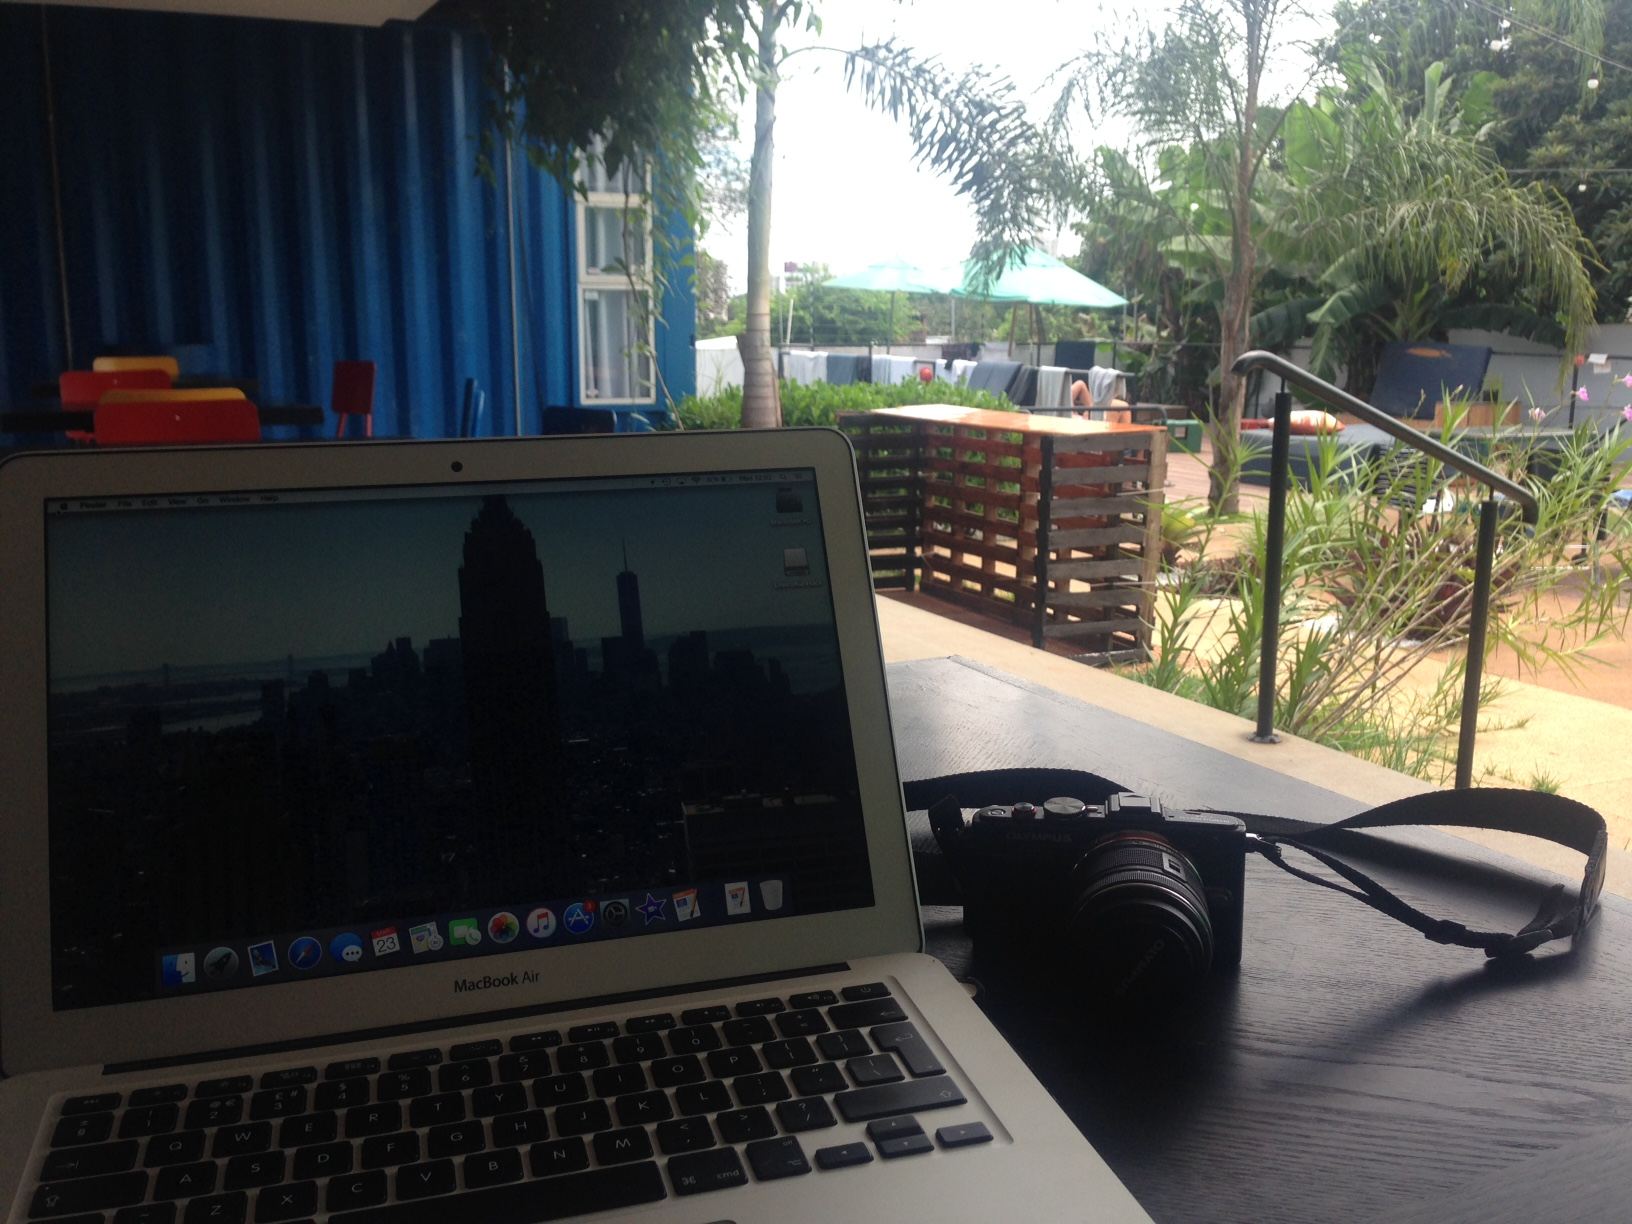 Catching up on some writing at the Tetris Container Hostel